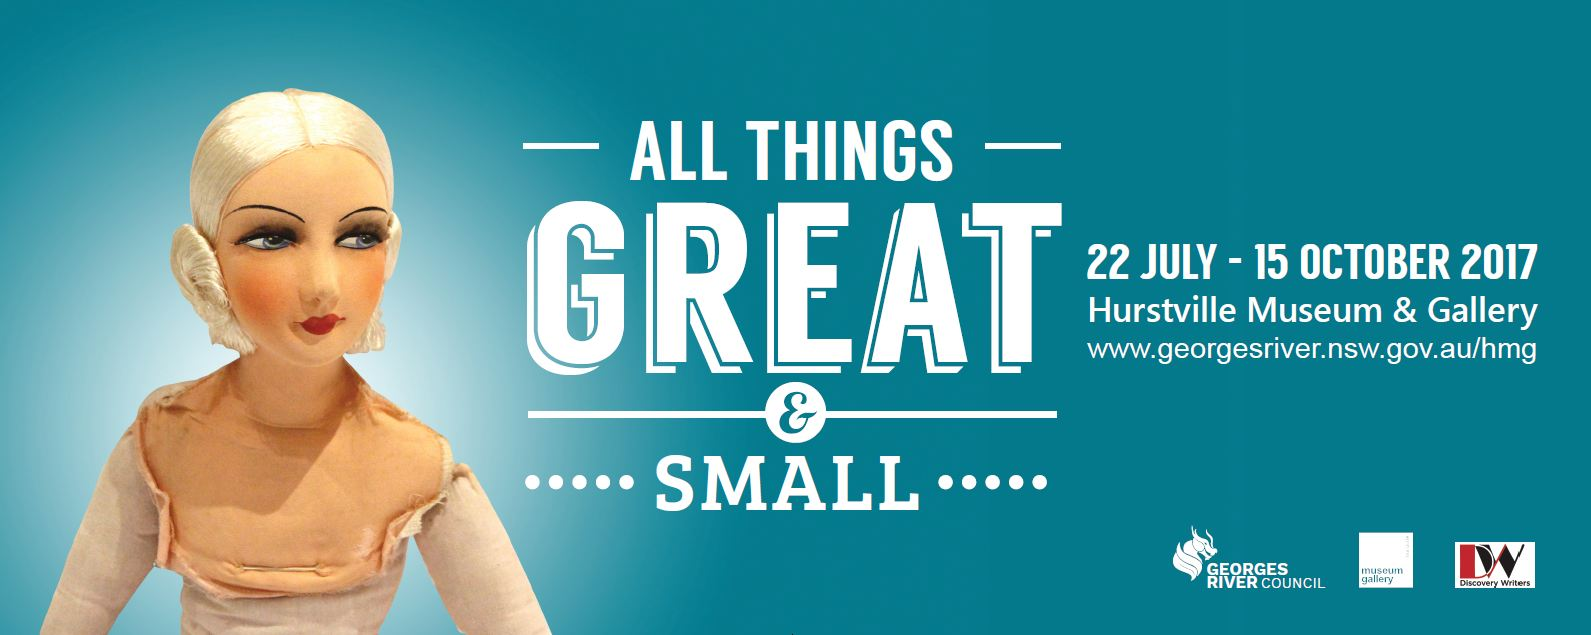 All things great and small exhibition